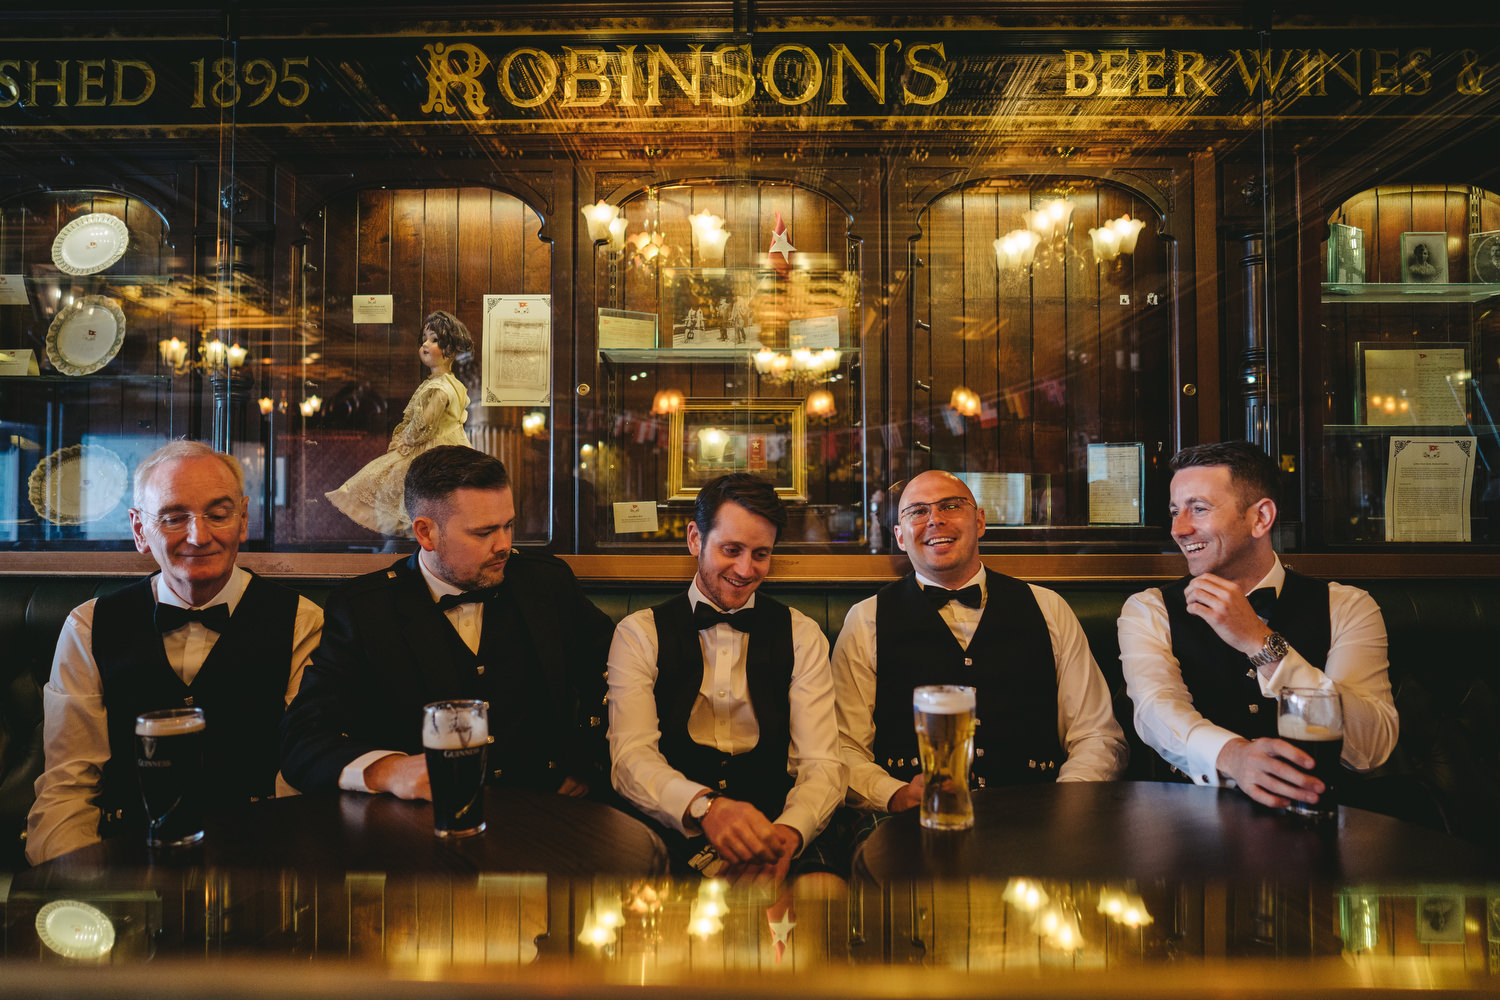 If you're an Irish wedding photographer, you have to get used to shooting in dark pubs.